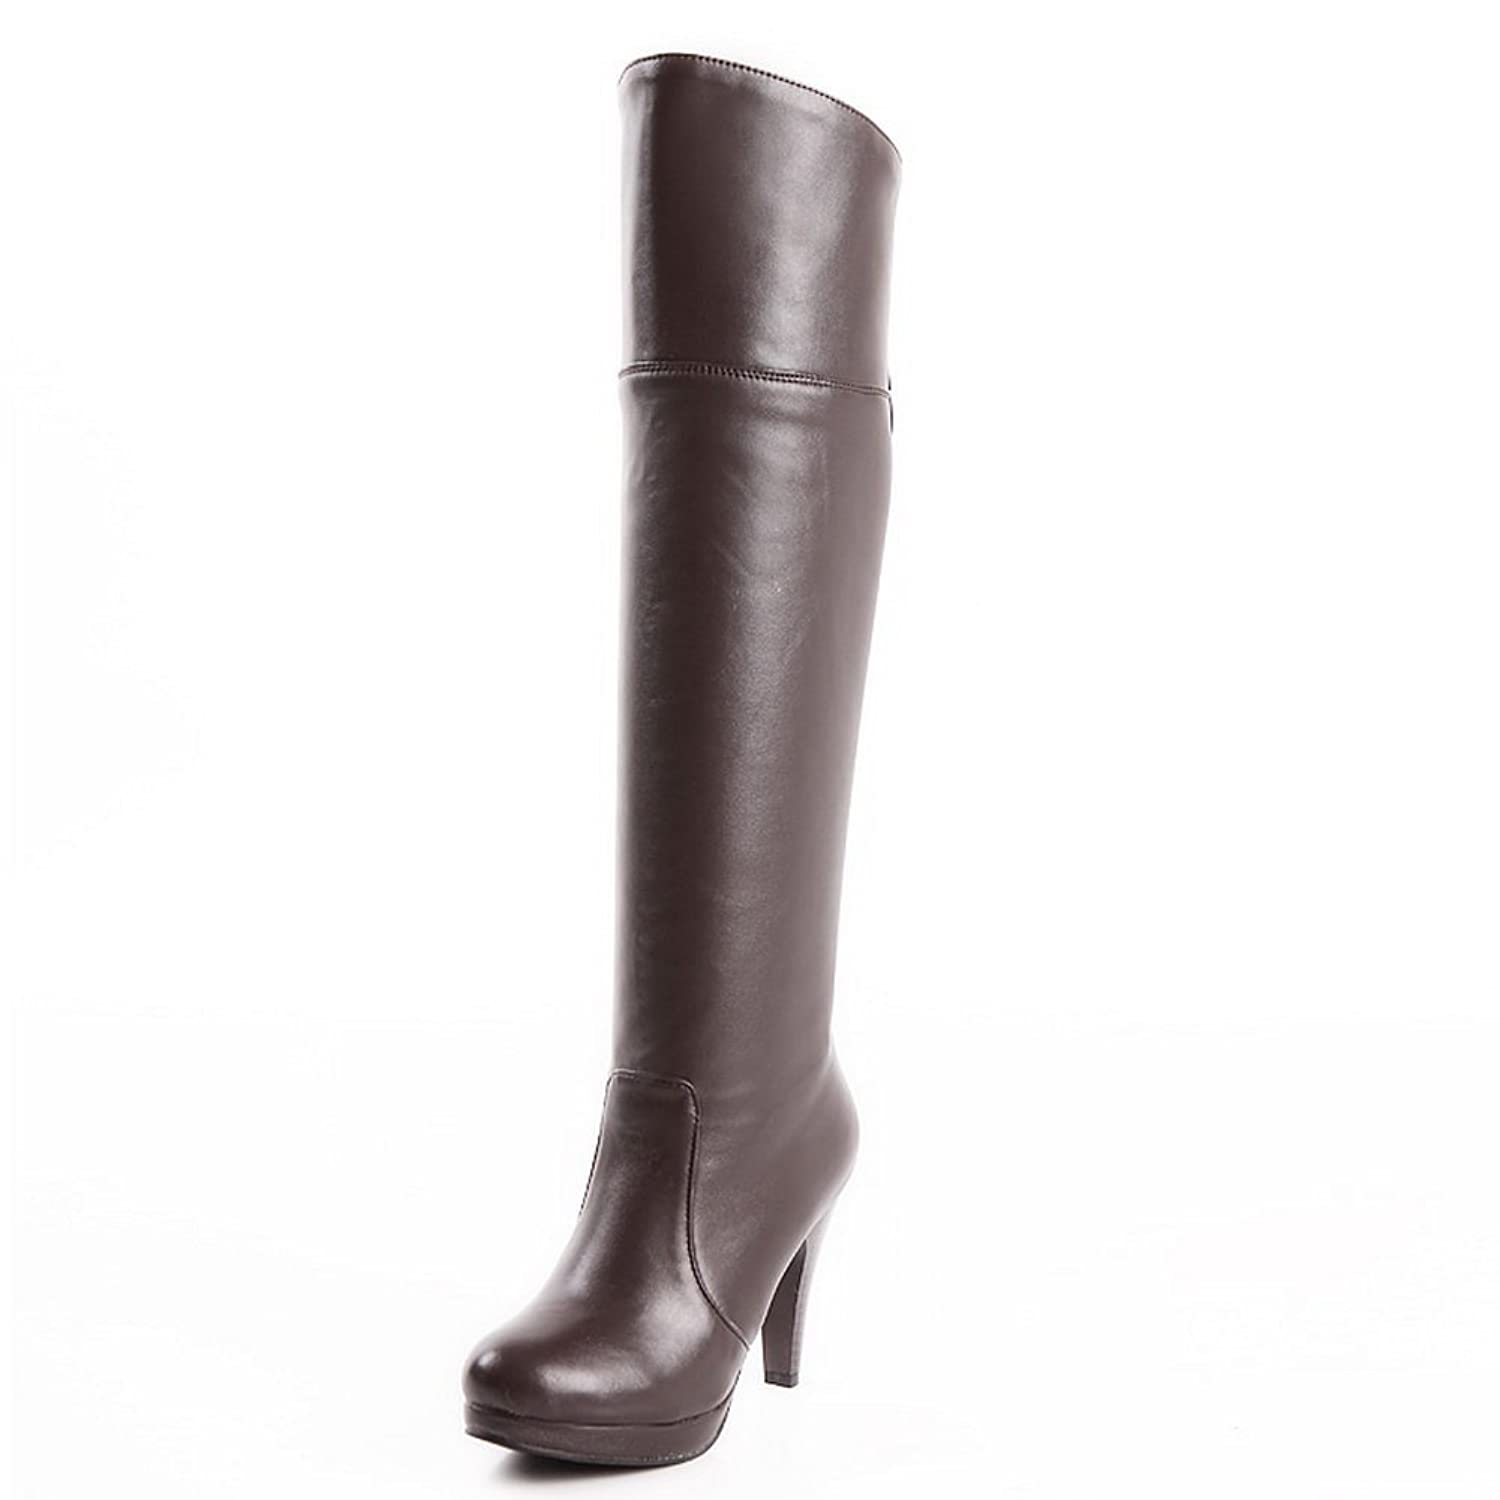 1TO9 Ladies Platform Fashion Cone-Shape Heel Round Toe Soft Material Boots